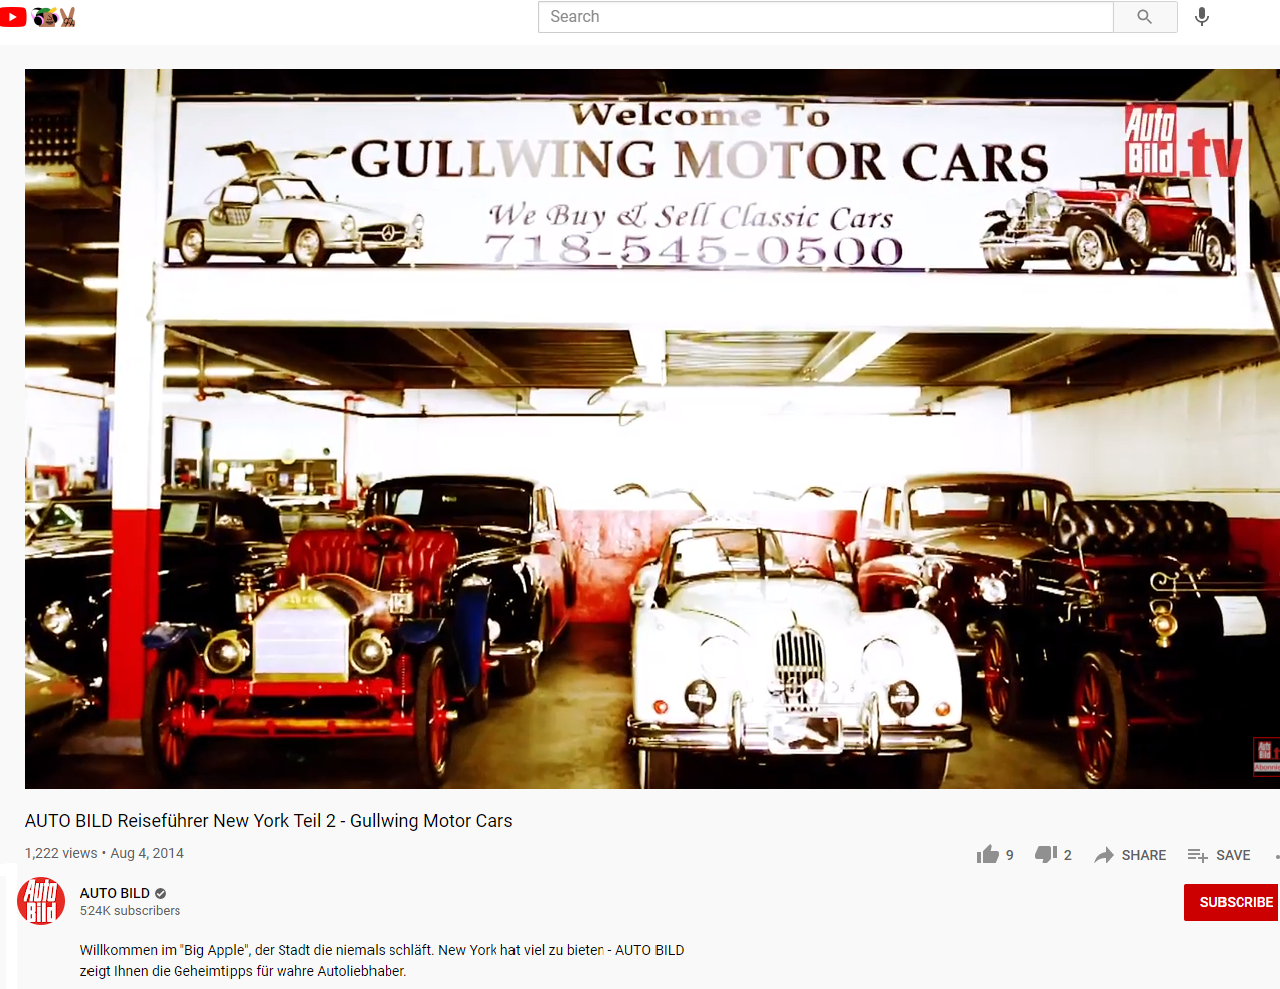 Peter Kumar of Gullwing Motor Cars Sell Classic Cars. We Buy Nationwide.